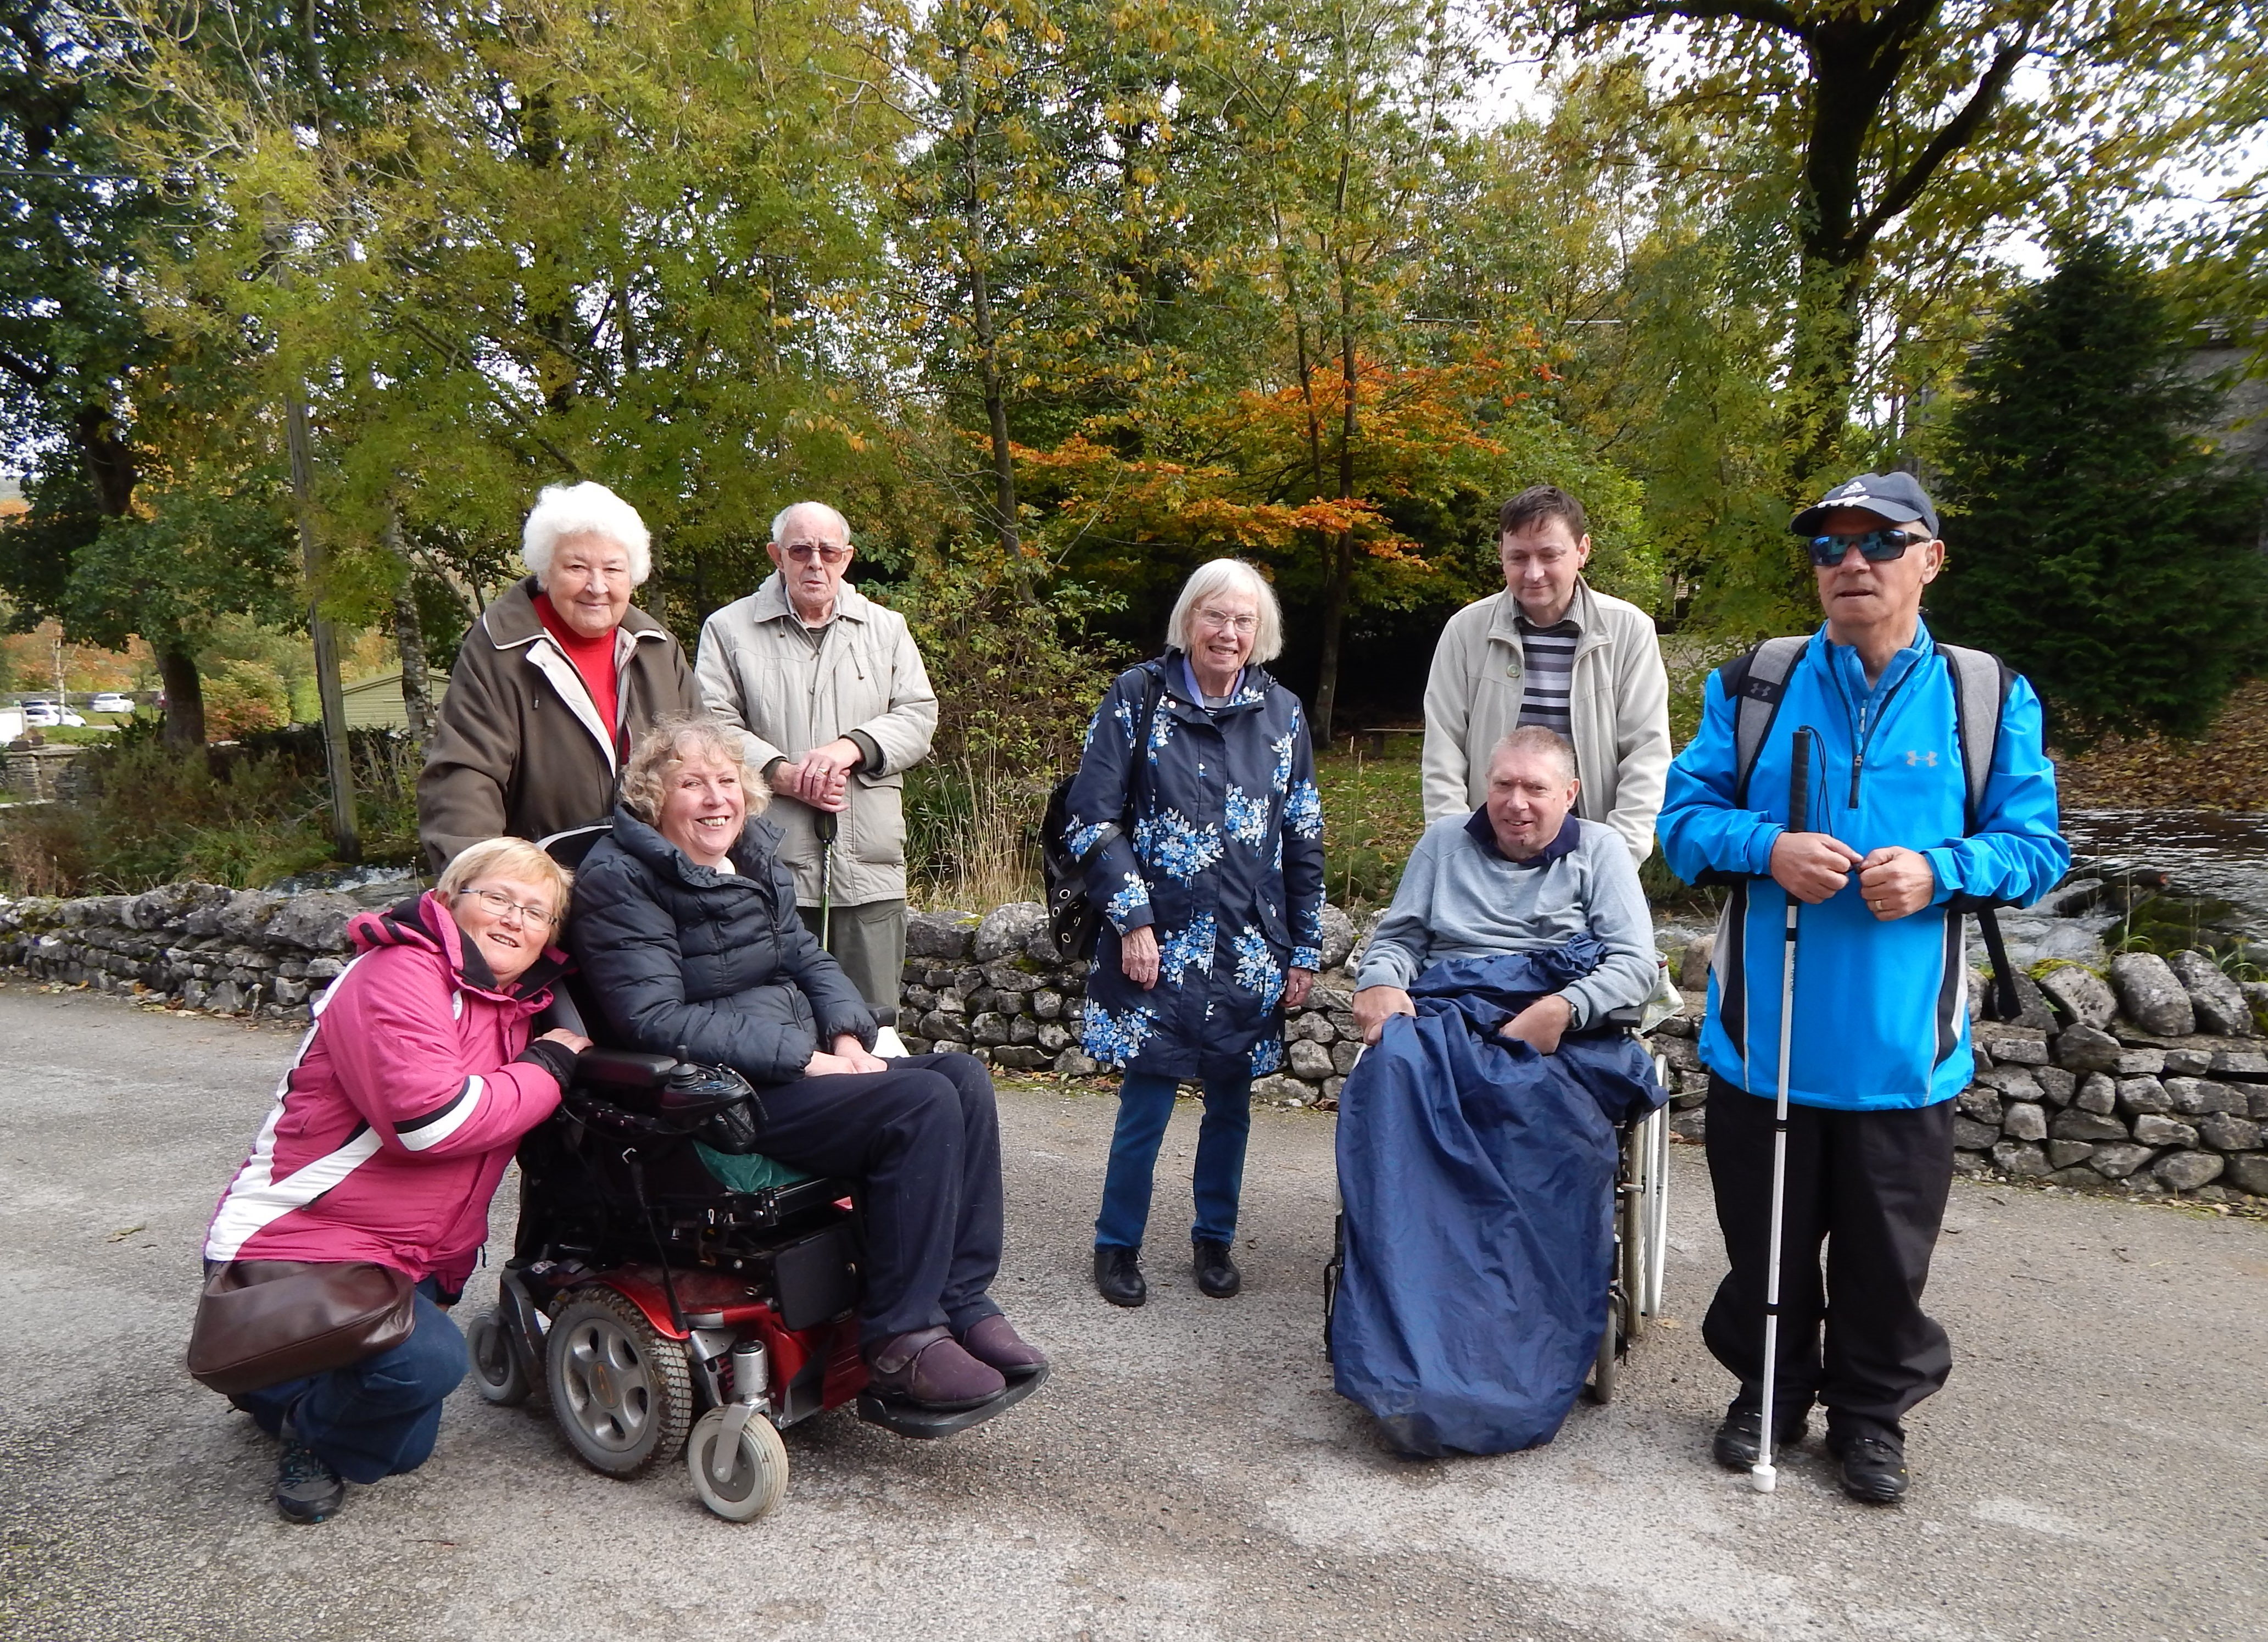 Eight people smiling with autumn trees behind.